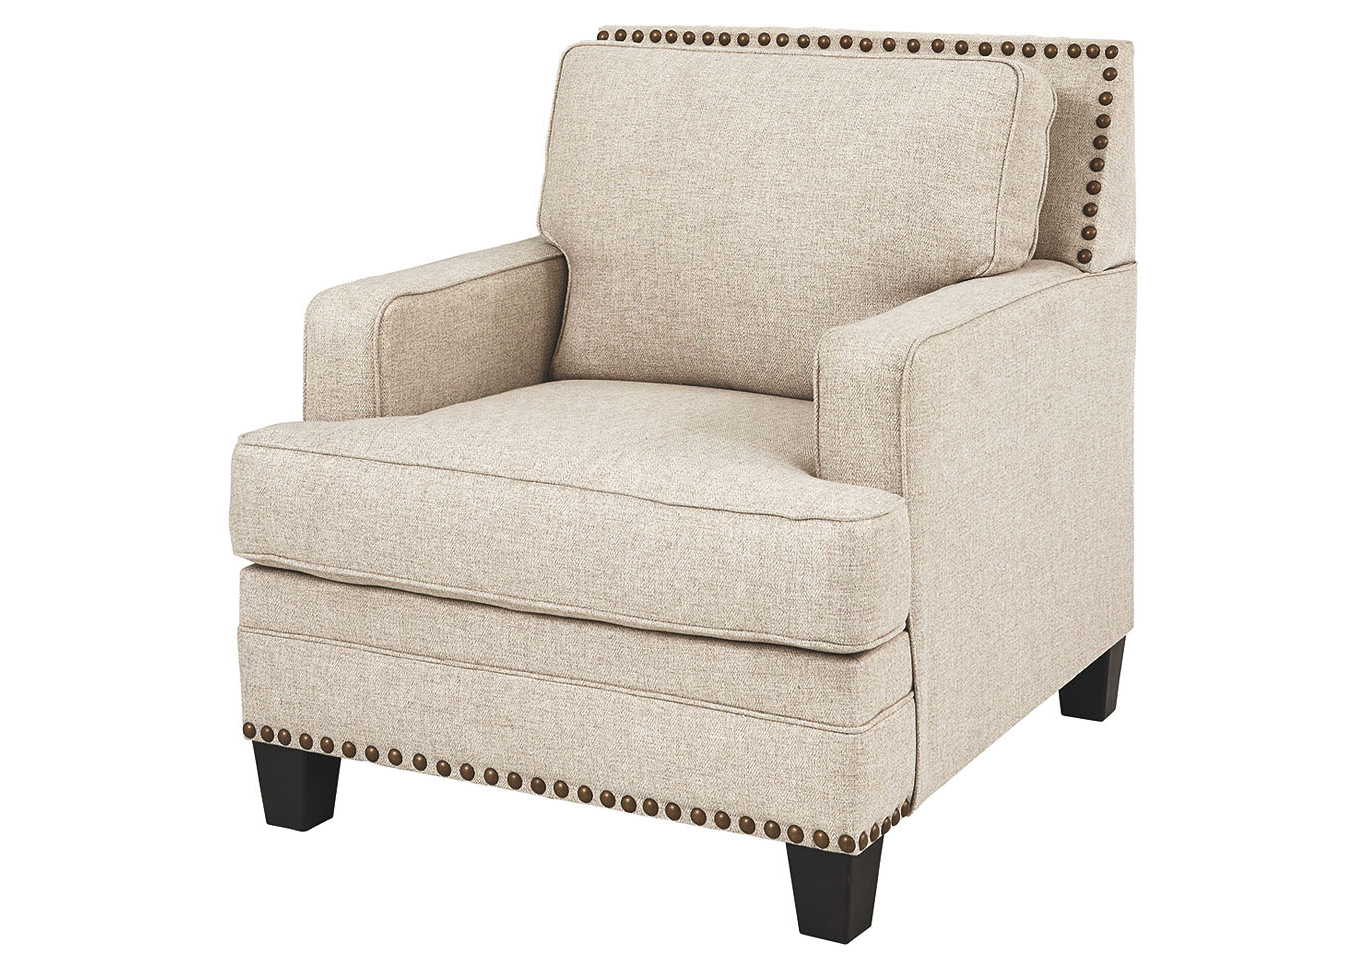 Chiles Linen Side Chairs In Preferred Claredon Linen Chair Ashley Furniture Homestore Singapore (View 15 of 20)